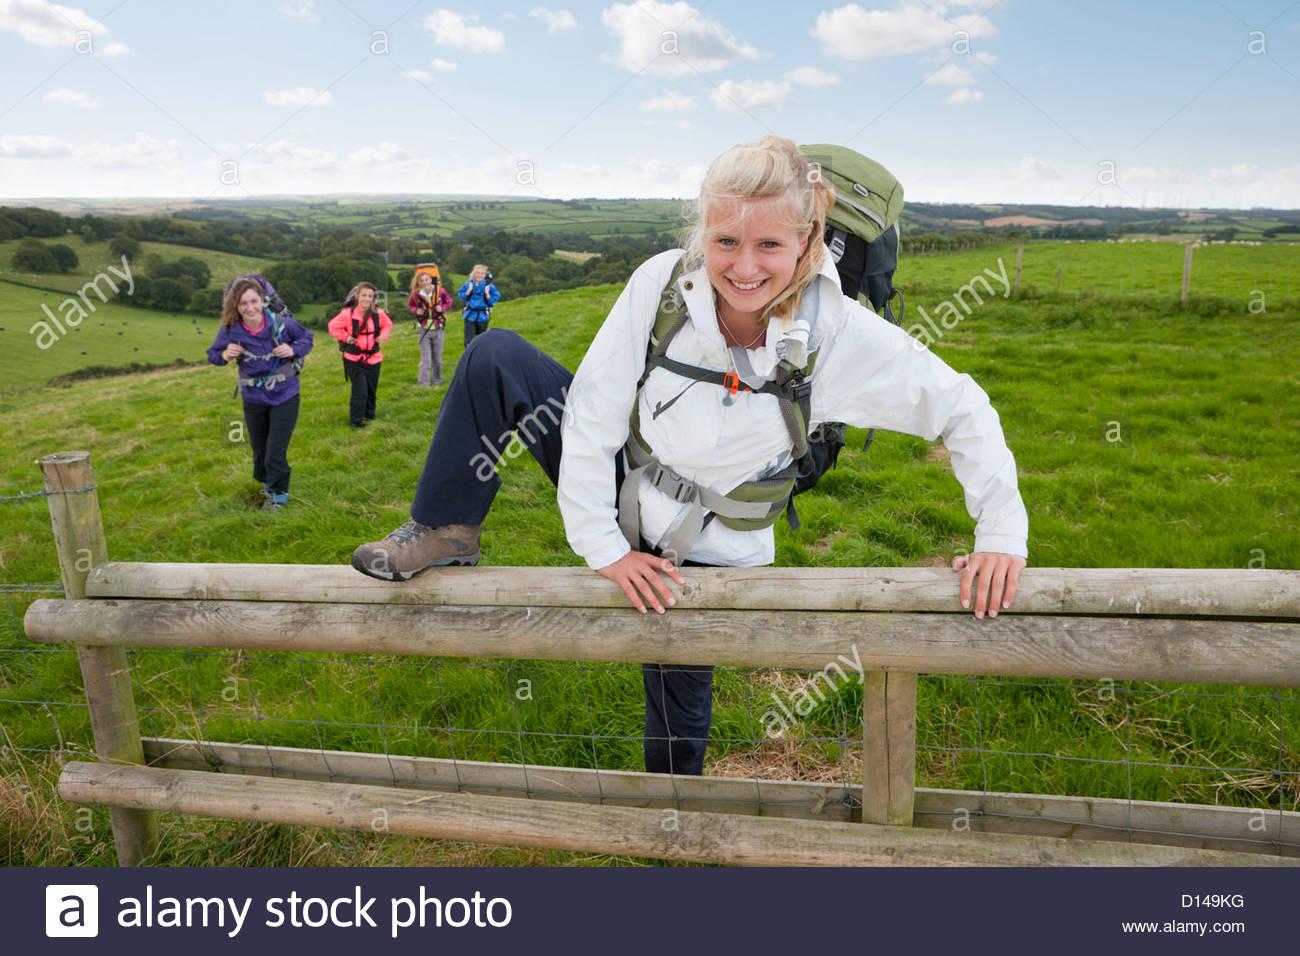 Smiling girl with backpack climbing fence in field - Stock Image